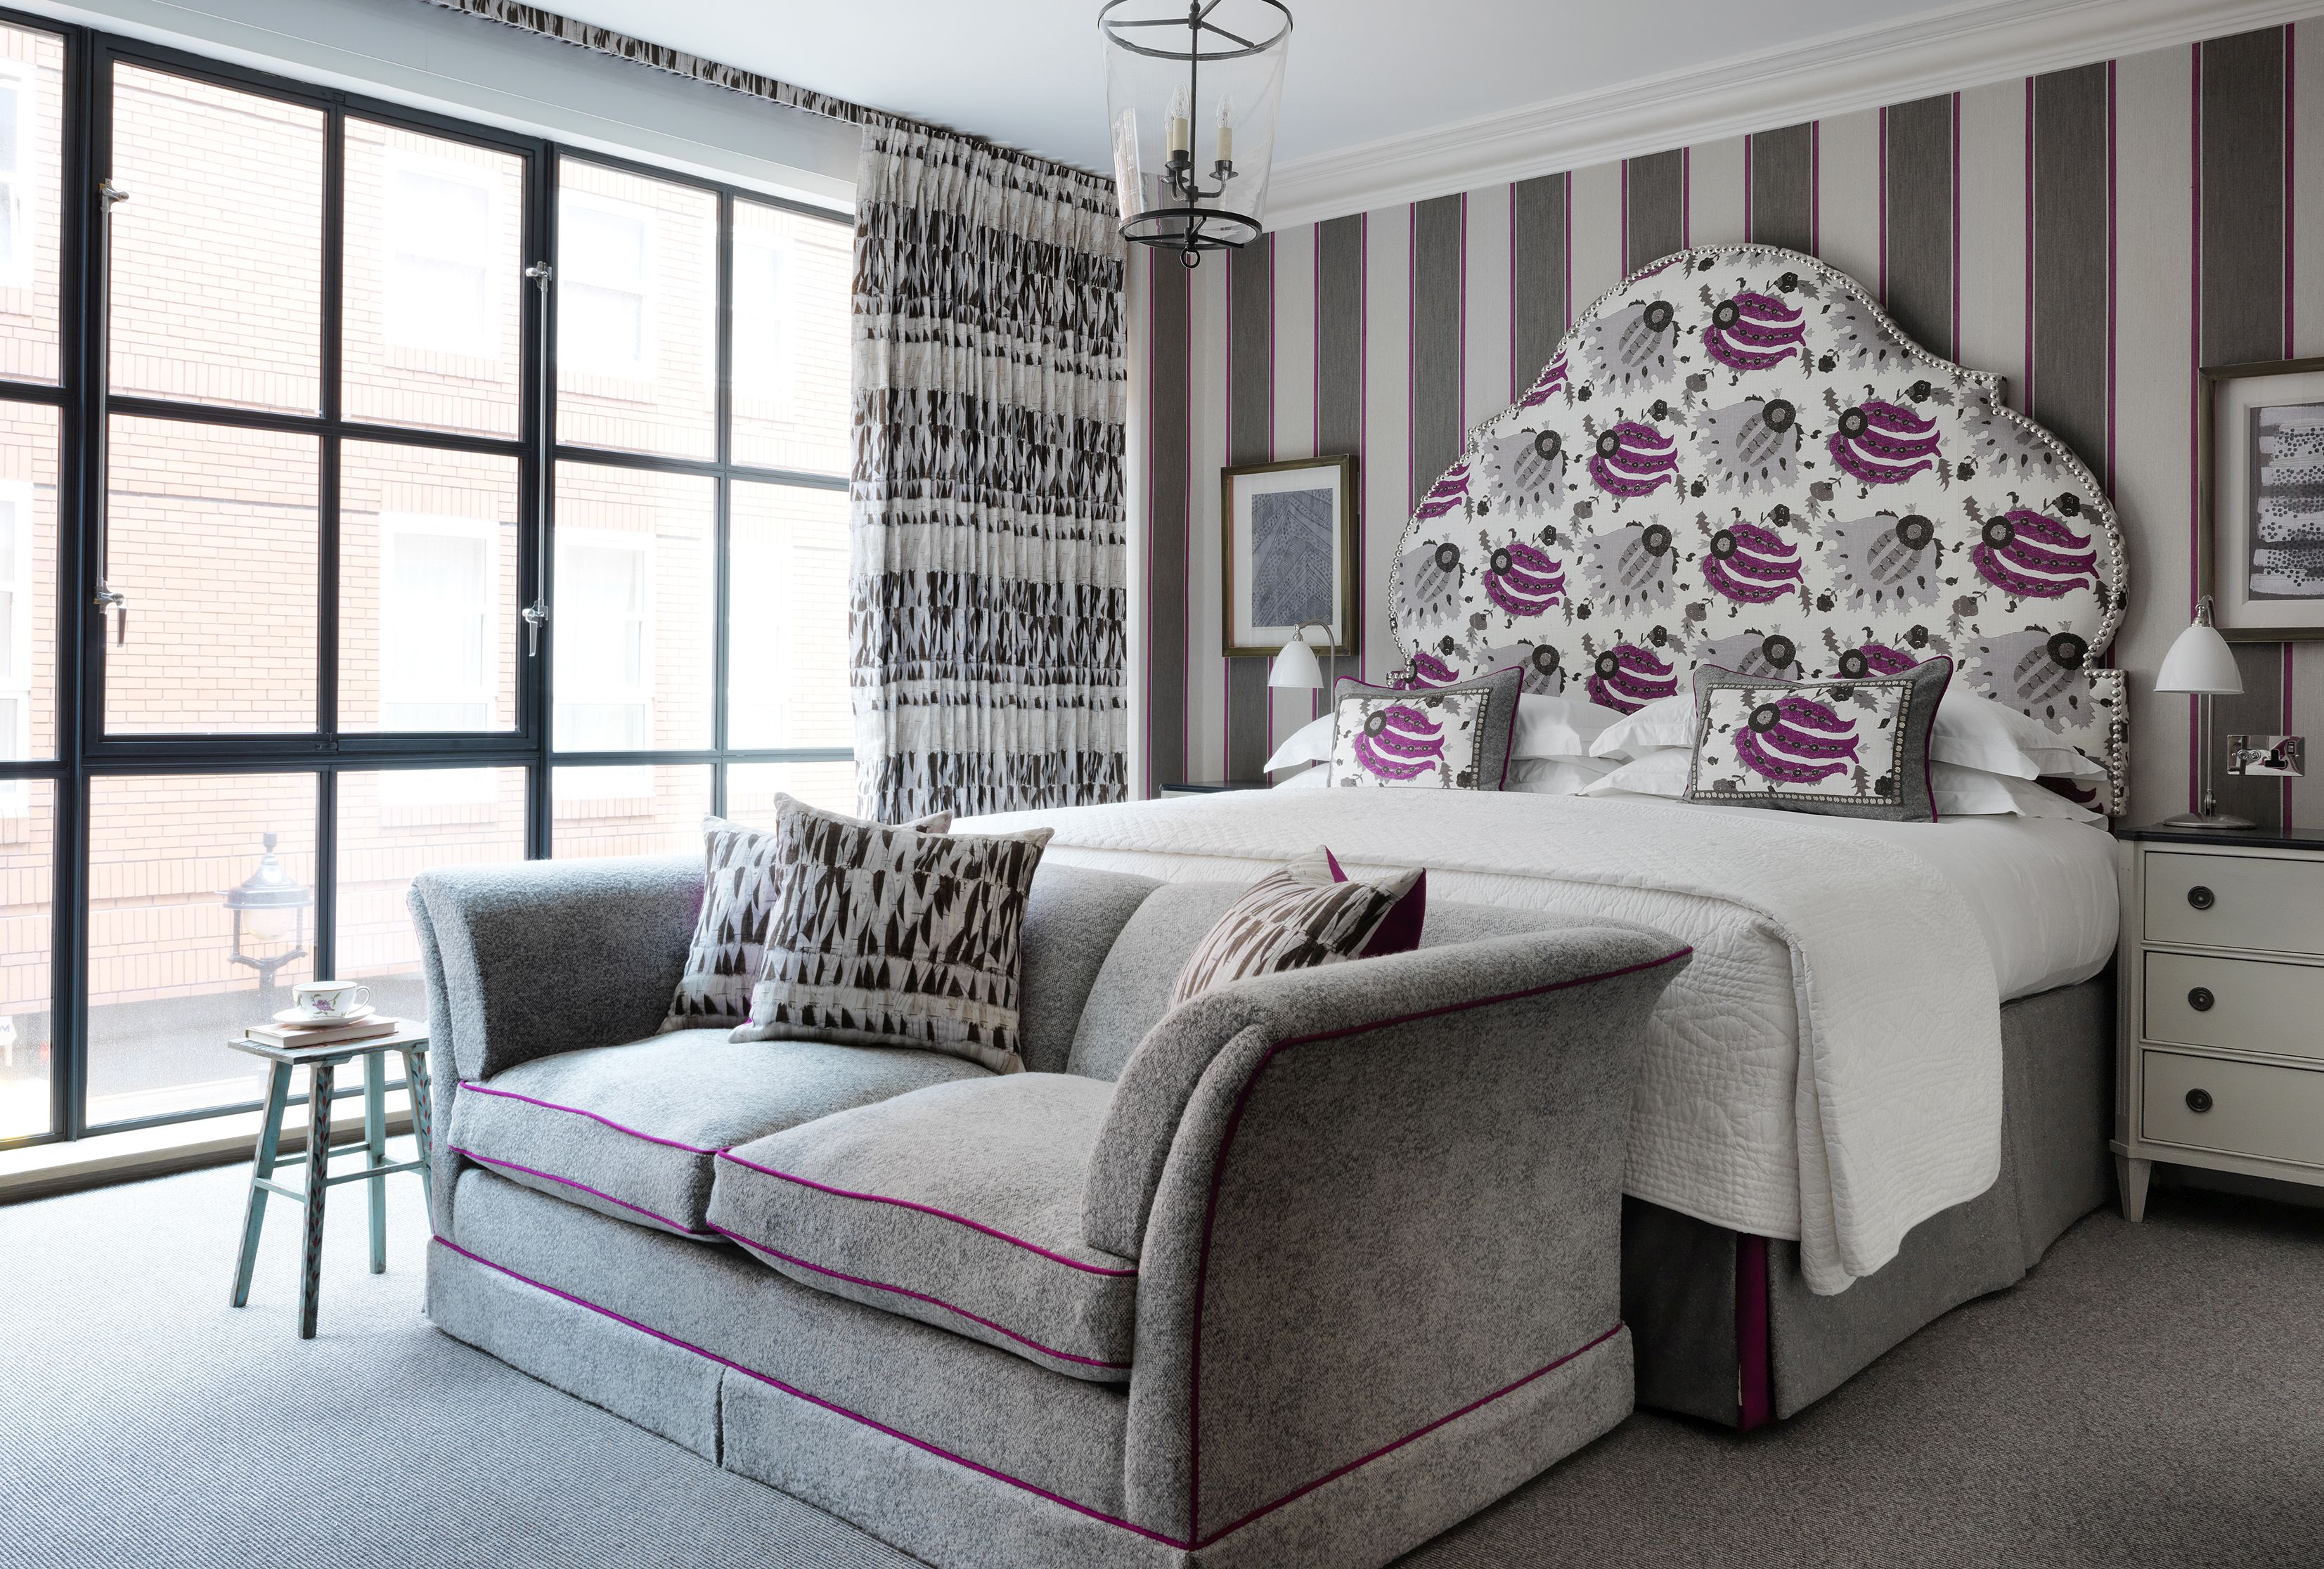 eat drink sleep sunseeker london on the ivy reopening caf royal and ham yard hotel. Black Bedroom Furniture Sets. Home Design Ideas